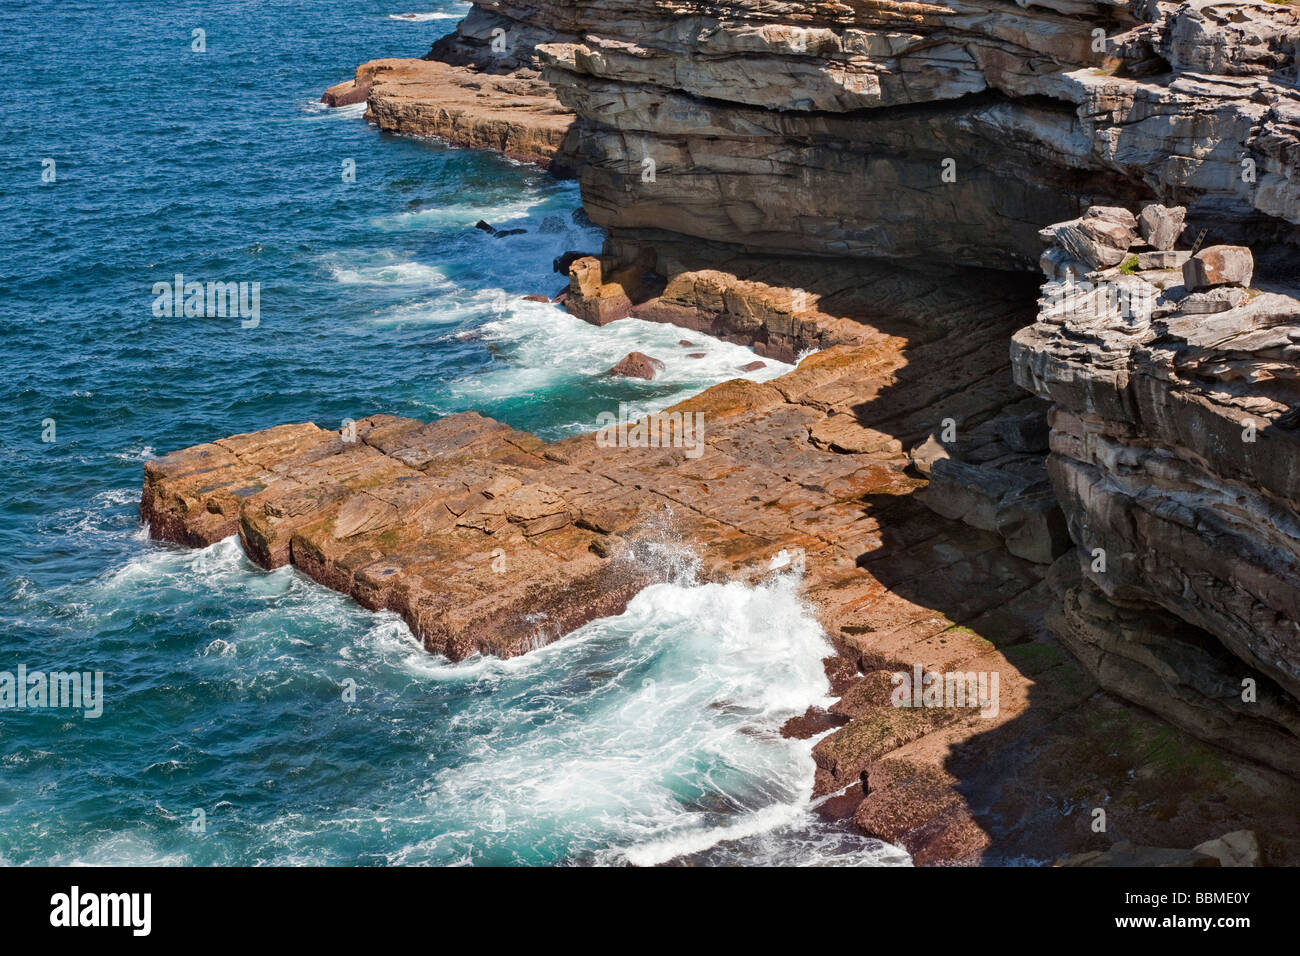 Australia New South Wales. The Gap at Watson  s Bay, Sydney Harbour. - Stock Image